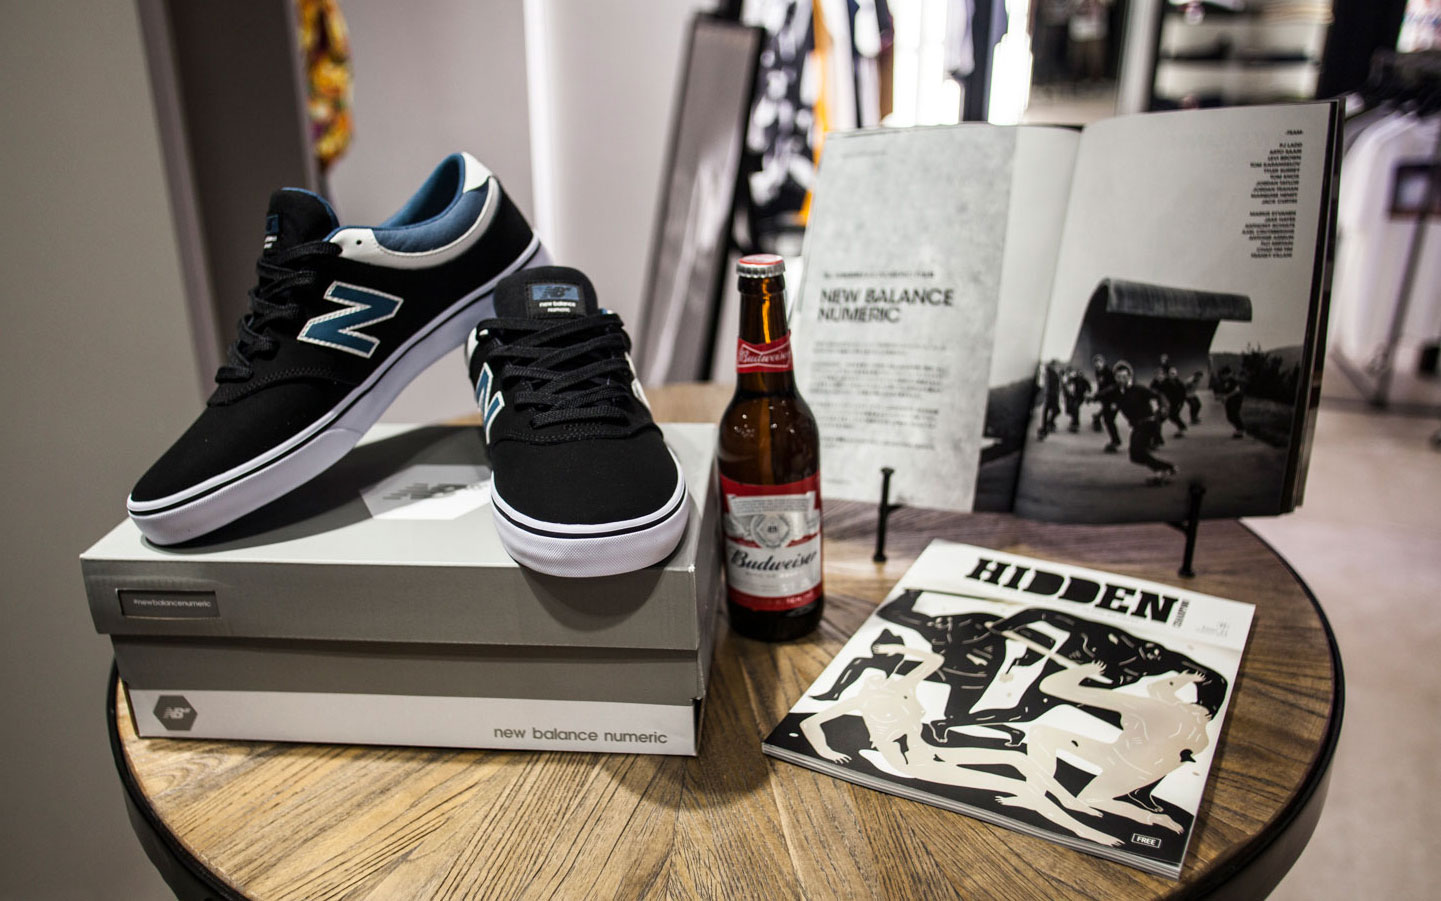 new balance numeric Launch Party at MORTAR